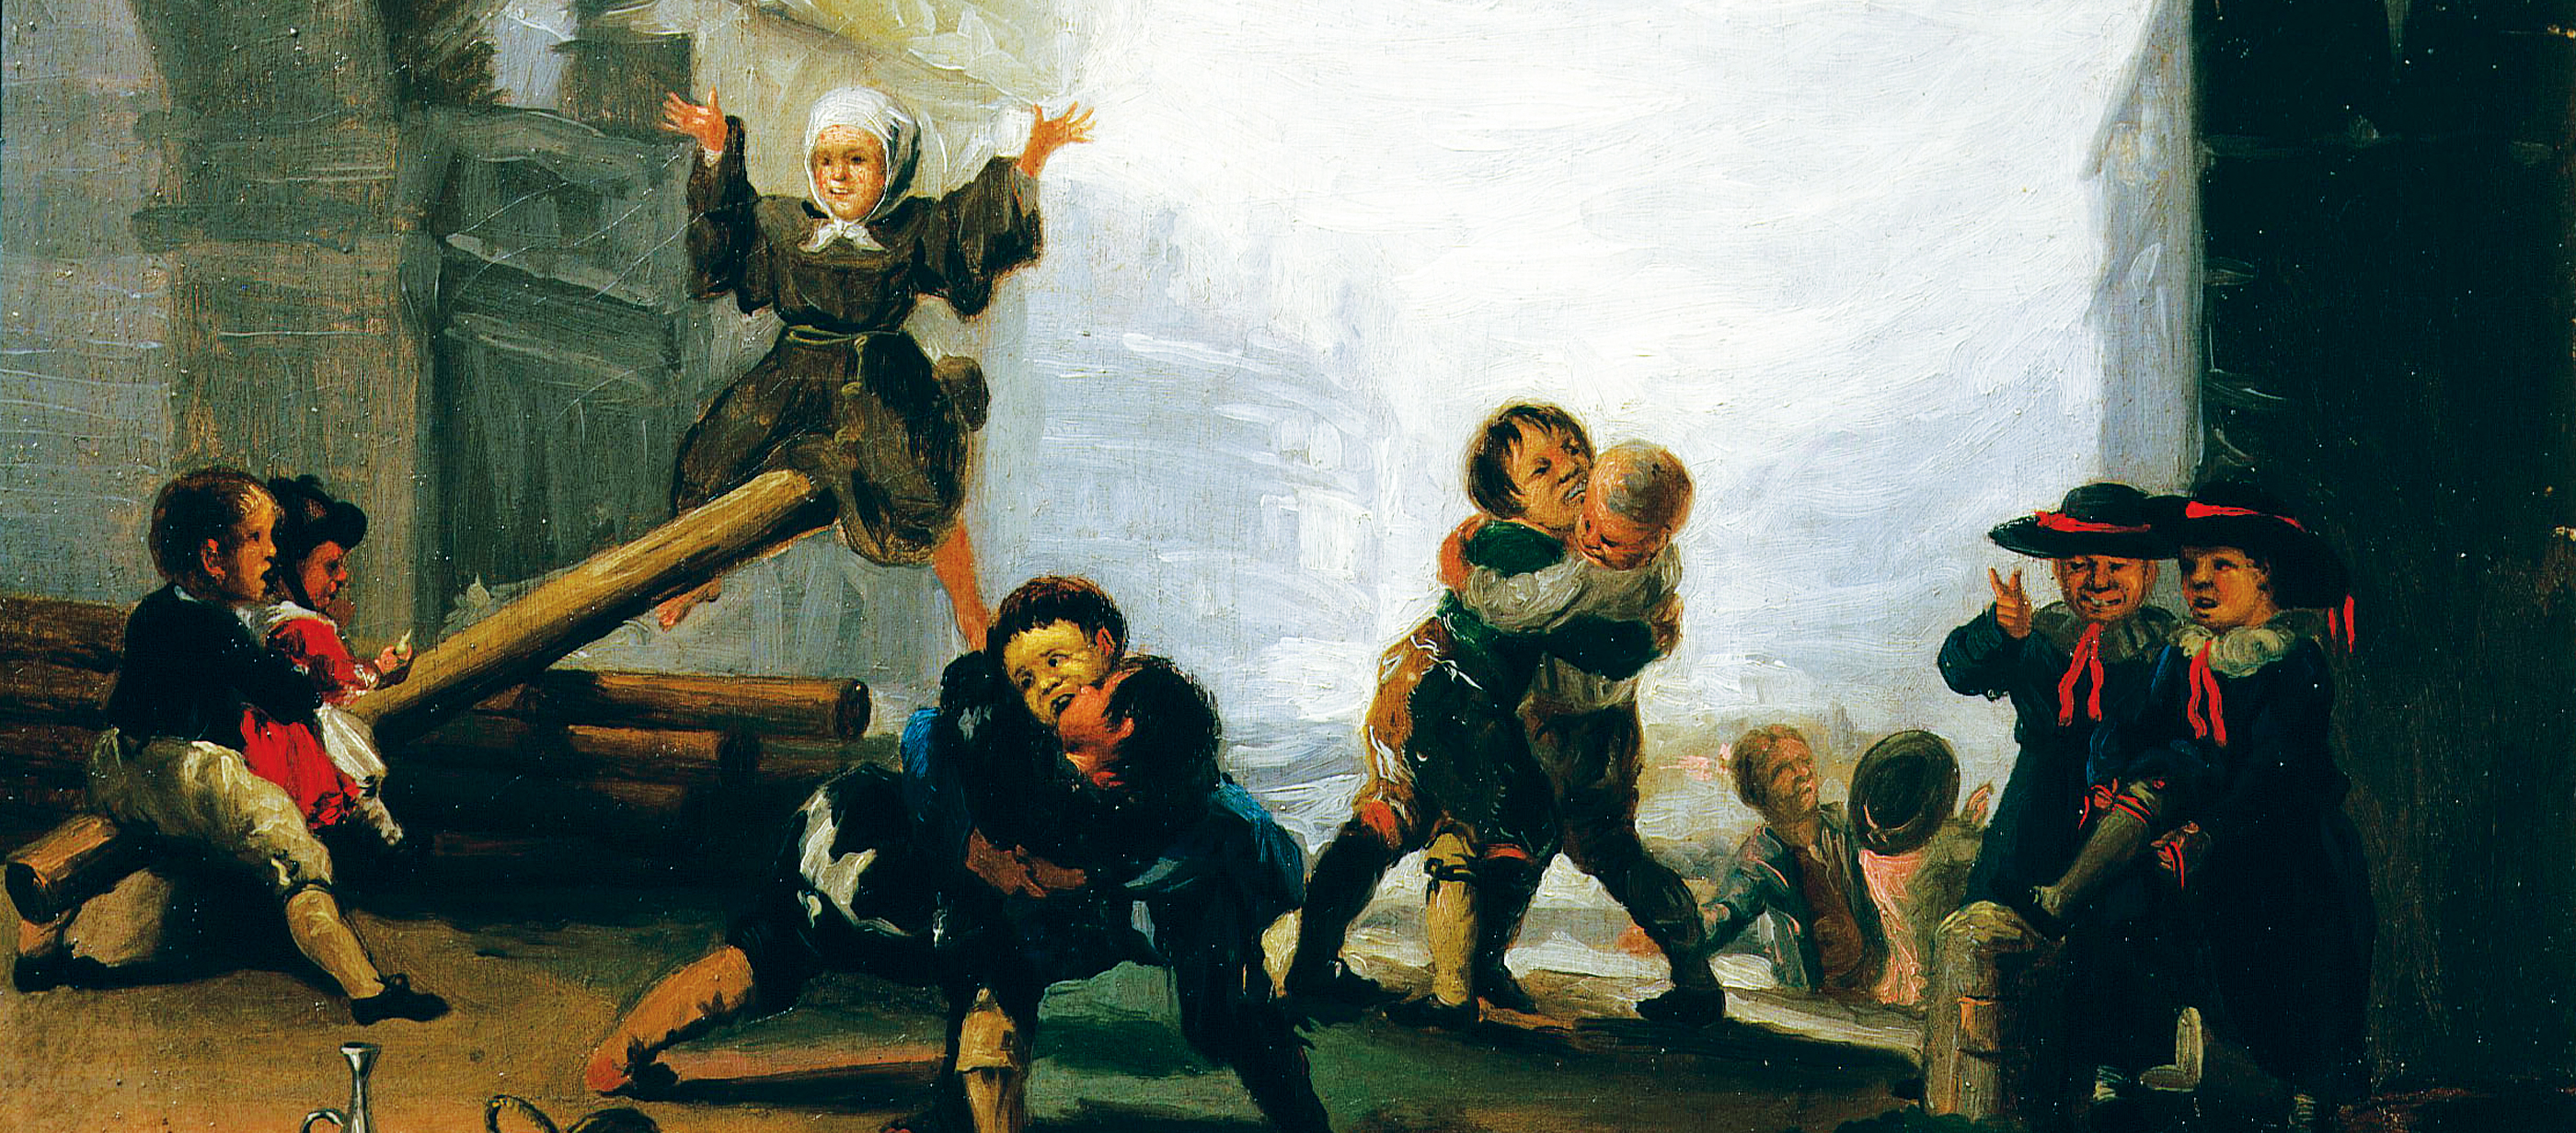 Boys Playing at Seesaw, attributed to Francisco José de Goya y Lucientes, c. 1785. National Museum, Gdańsk, Poland.